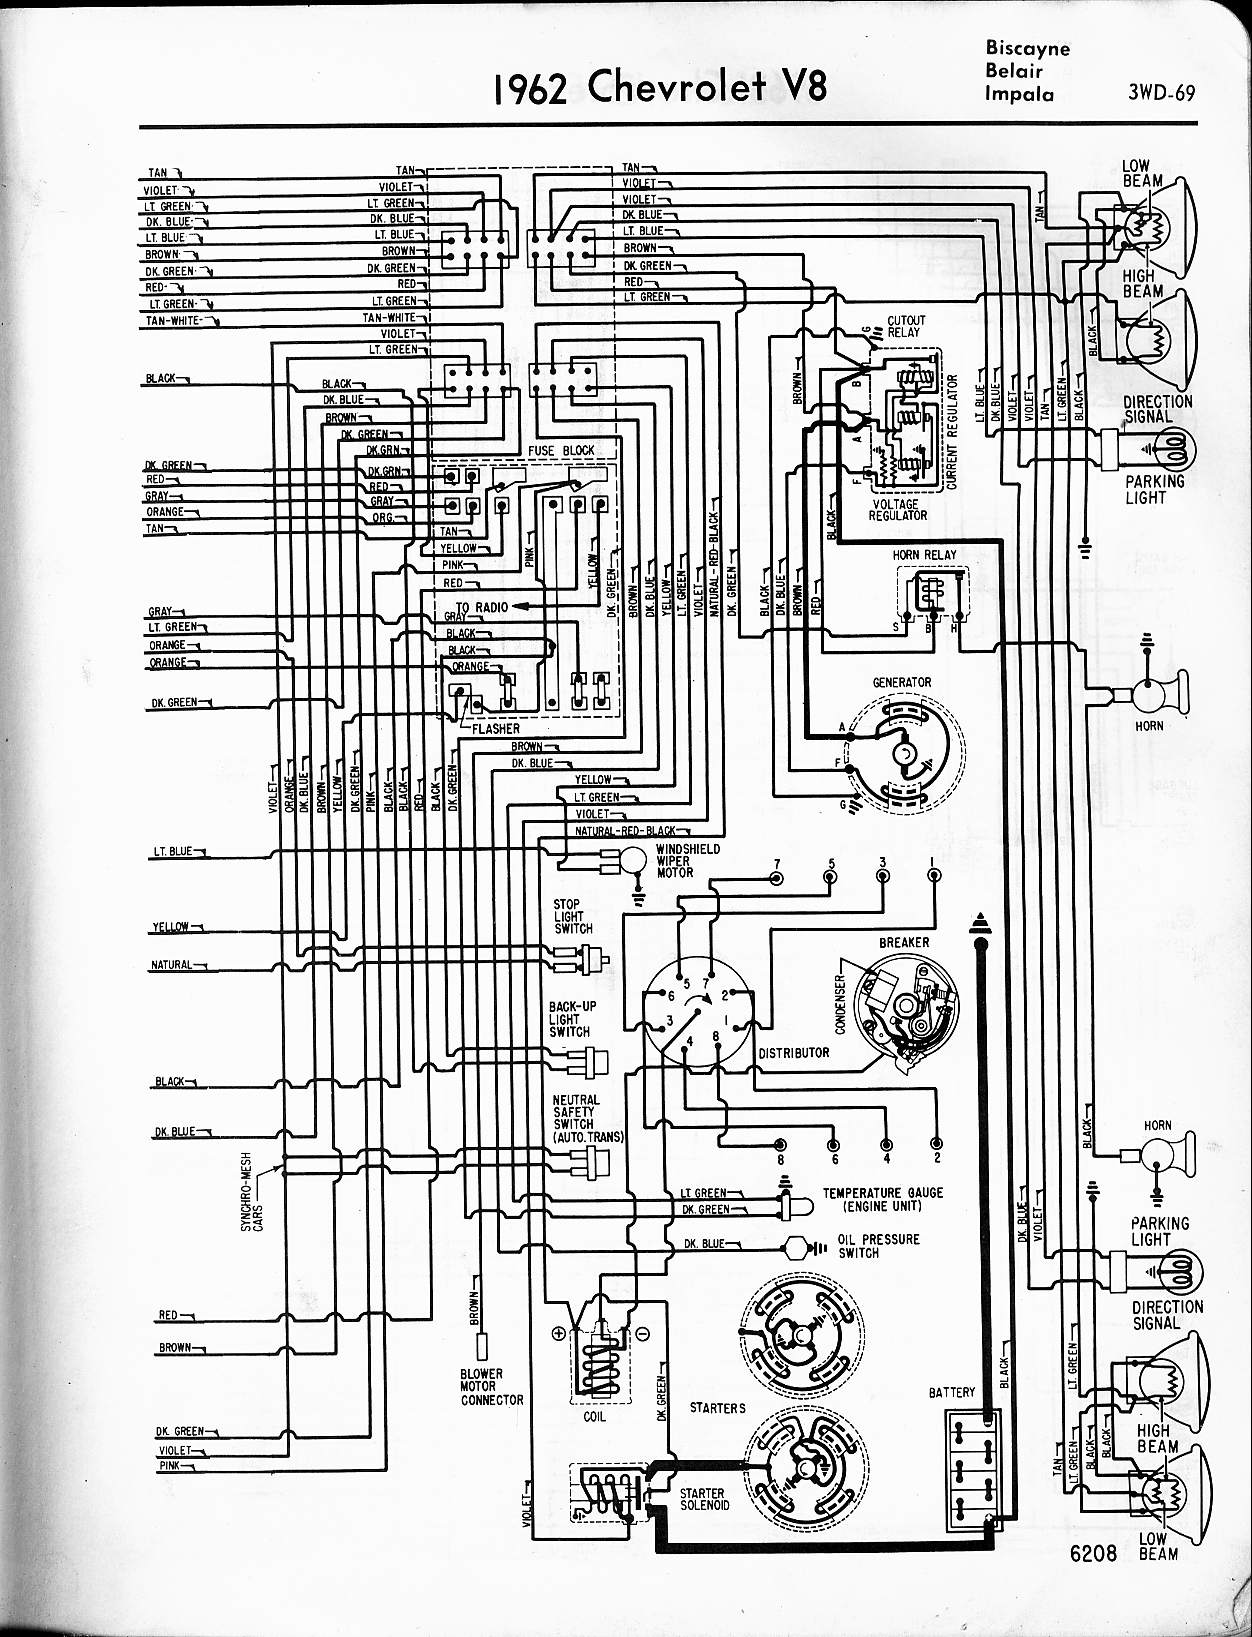 Electrical Wiring Diagram 1965 Chevy C10 Online Manuual Of Painless Fuse Box Layout Chevrolet Todays Rh 18 10 7 1813weddingbarn Com 1968